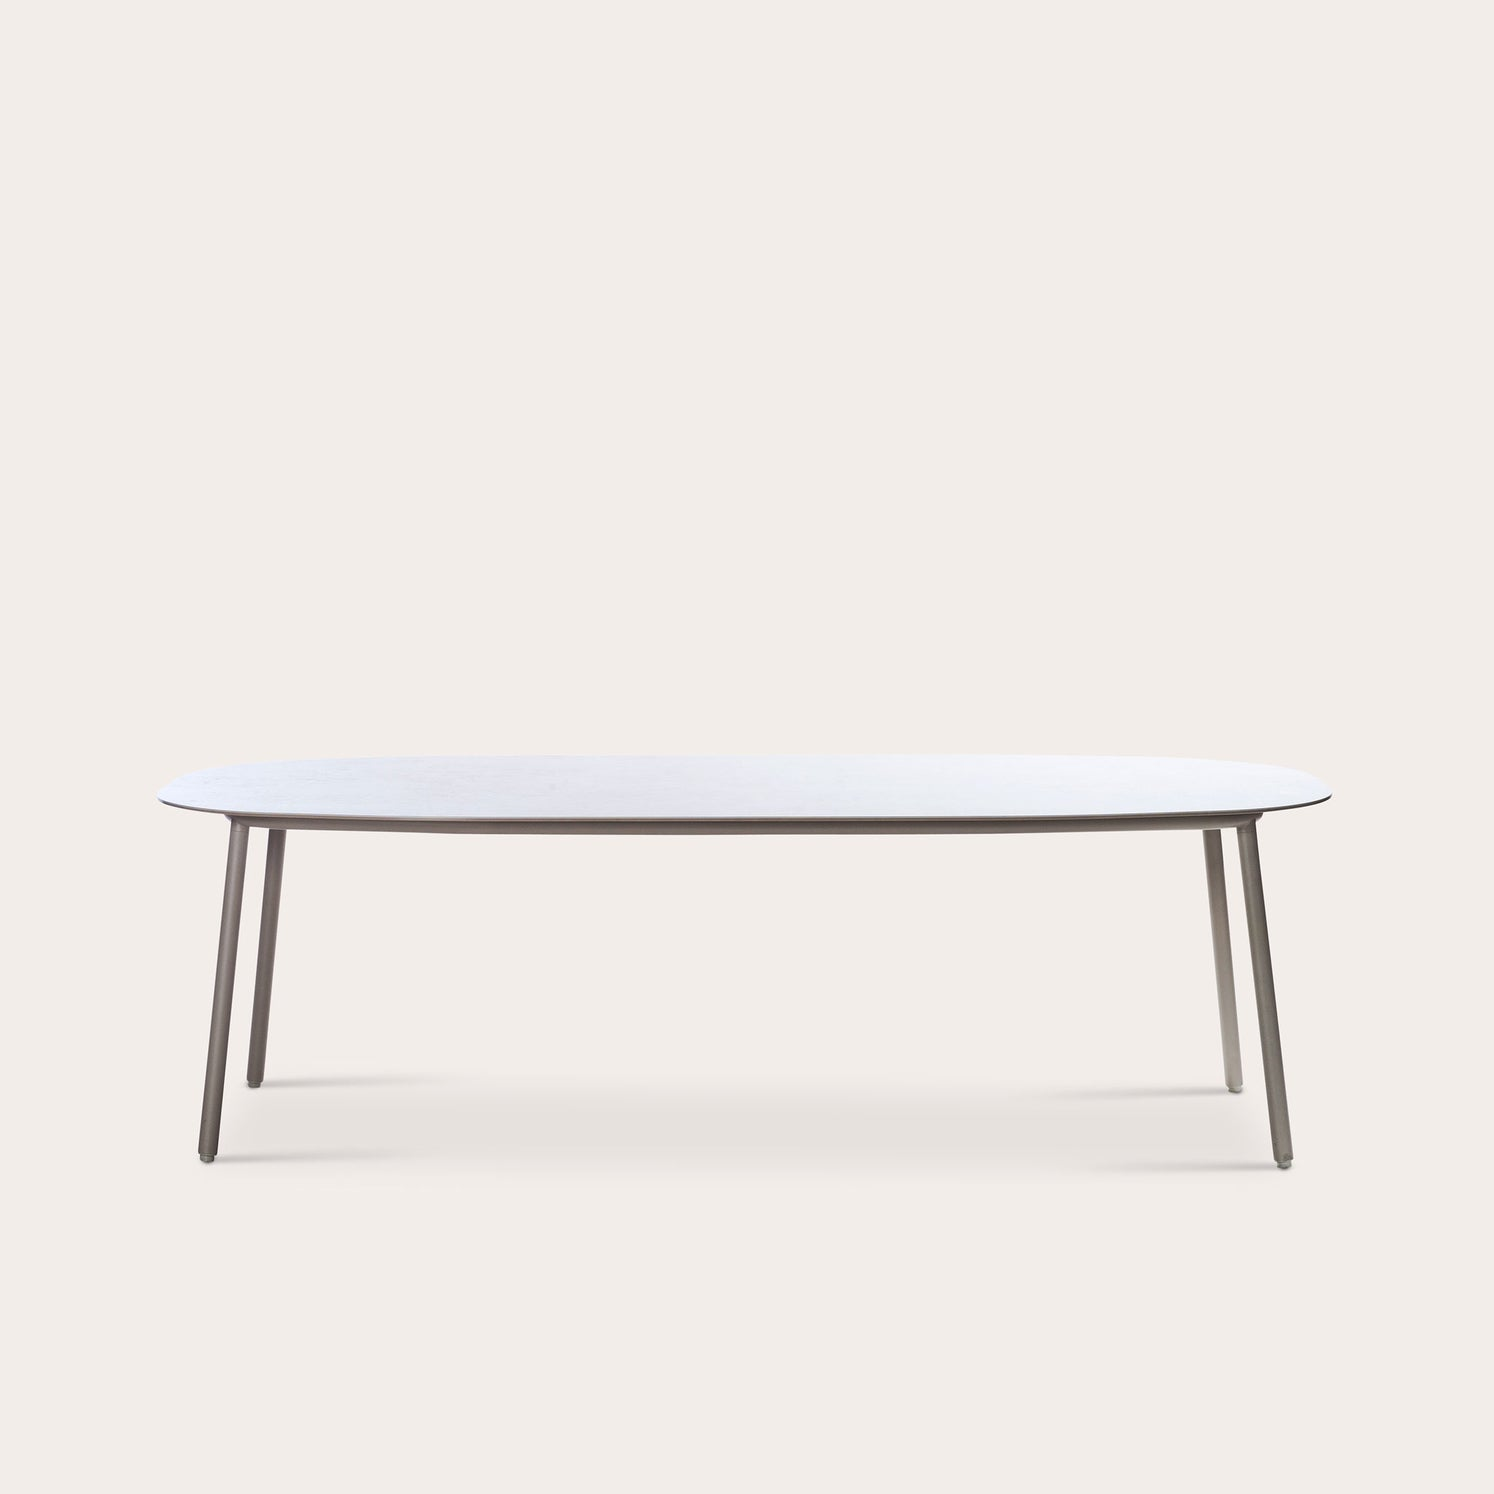 TOSCA Dining Table Outdoor Monica Armani Designer Furniture Sku: 007-200-10927